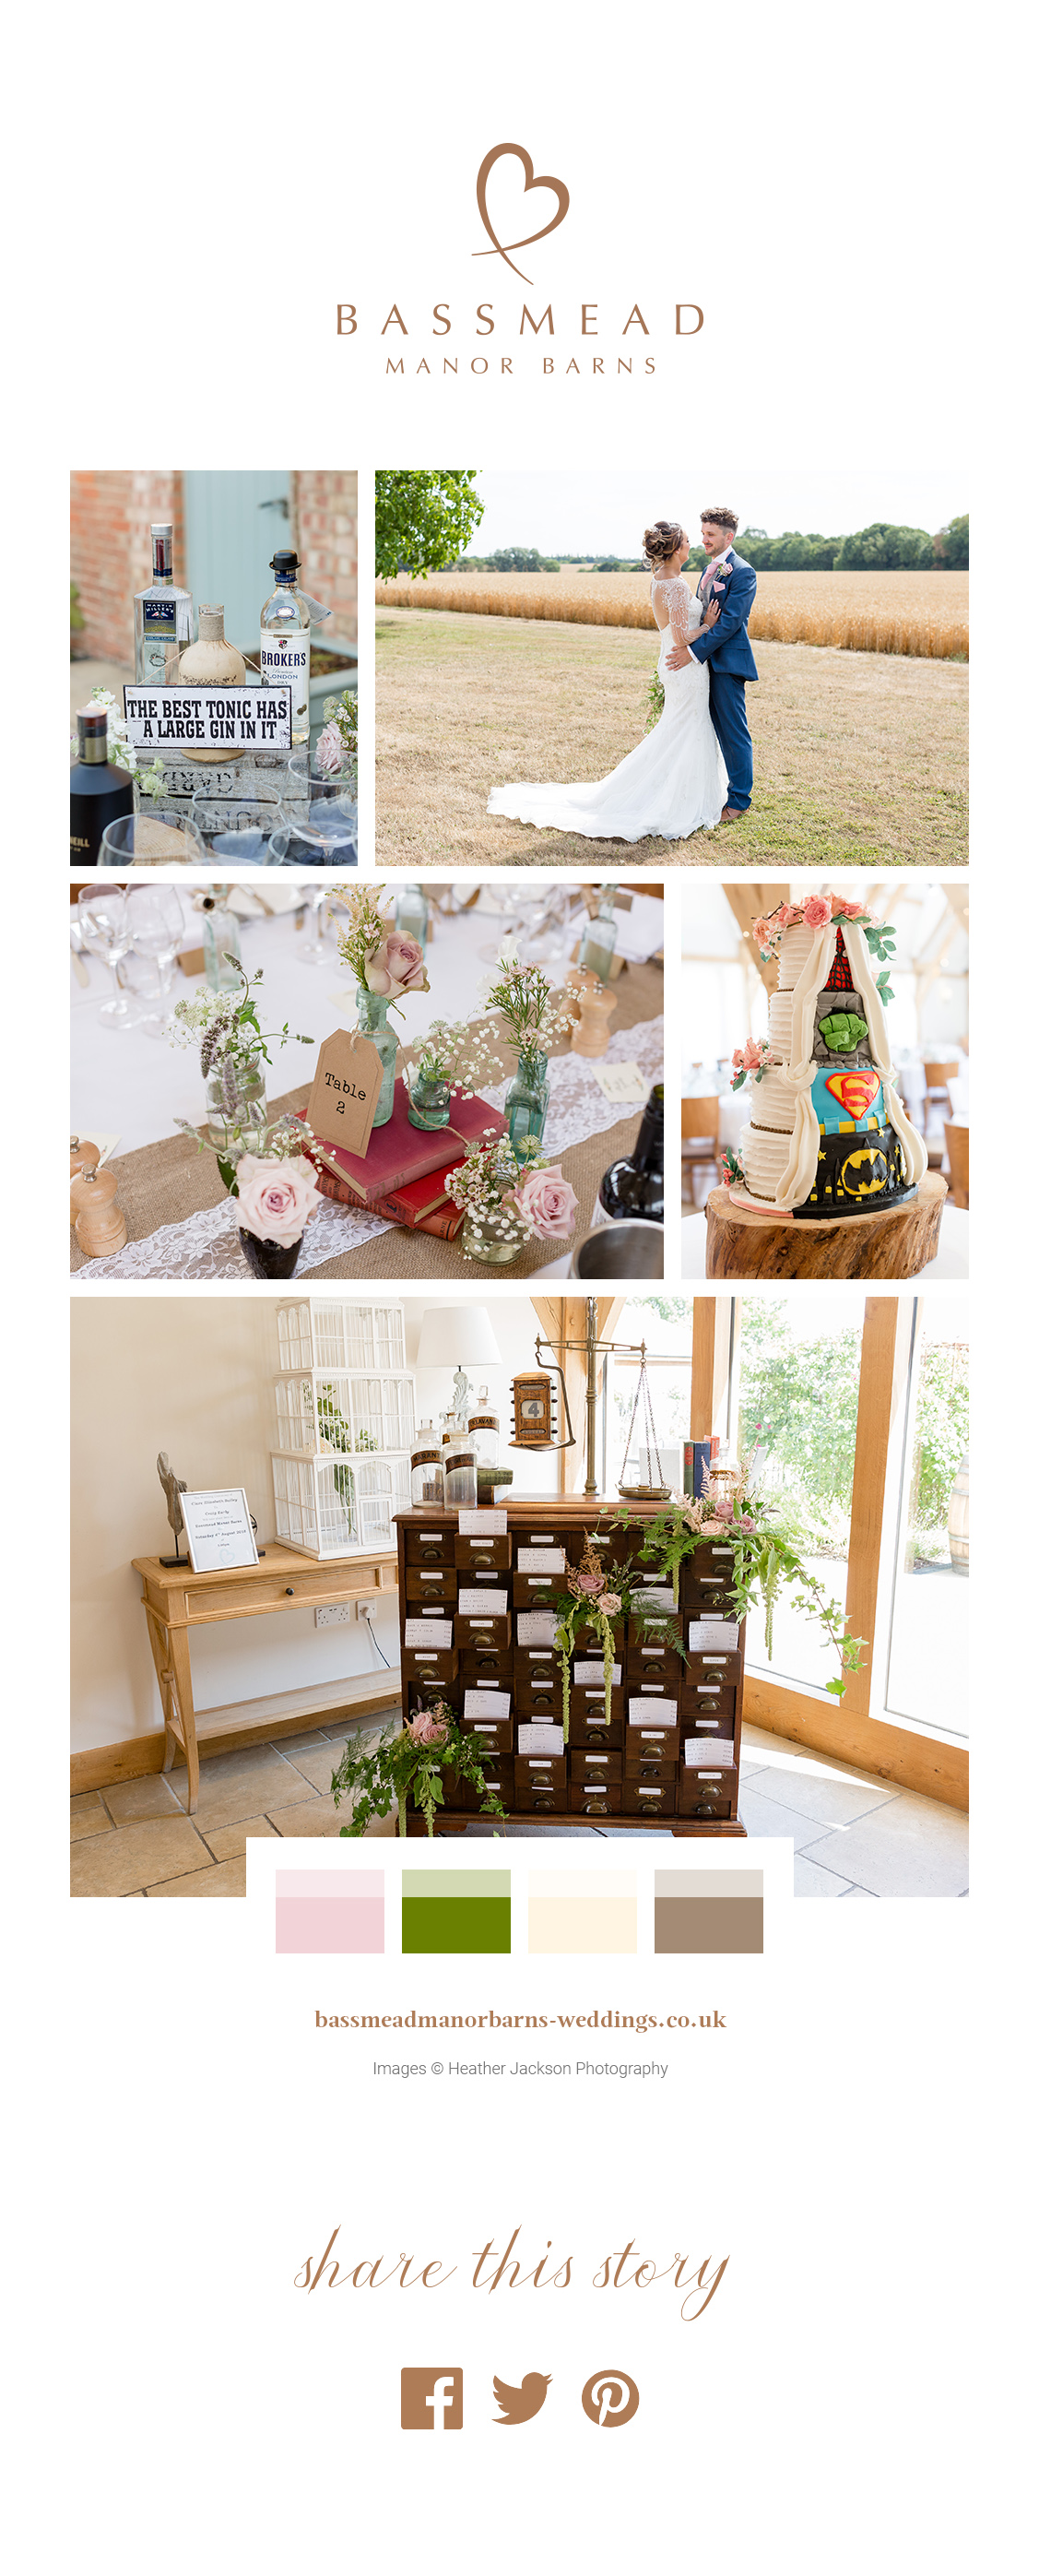 A Picture Perfect Summer Wedding – Bassmead Manor Barns